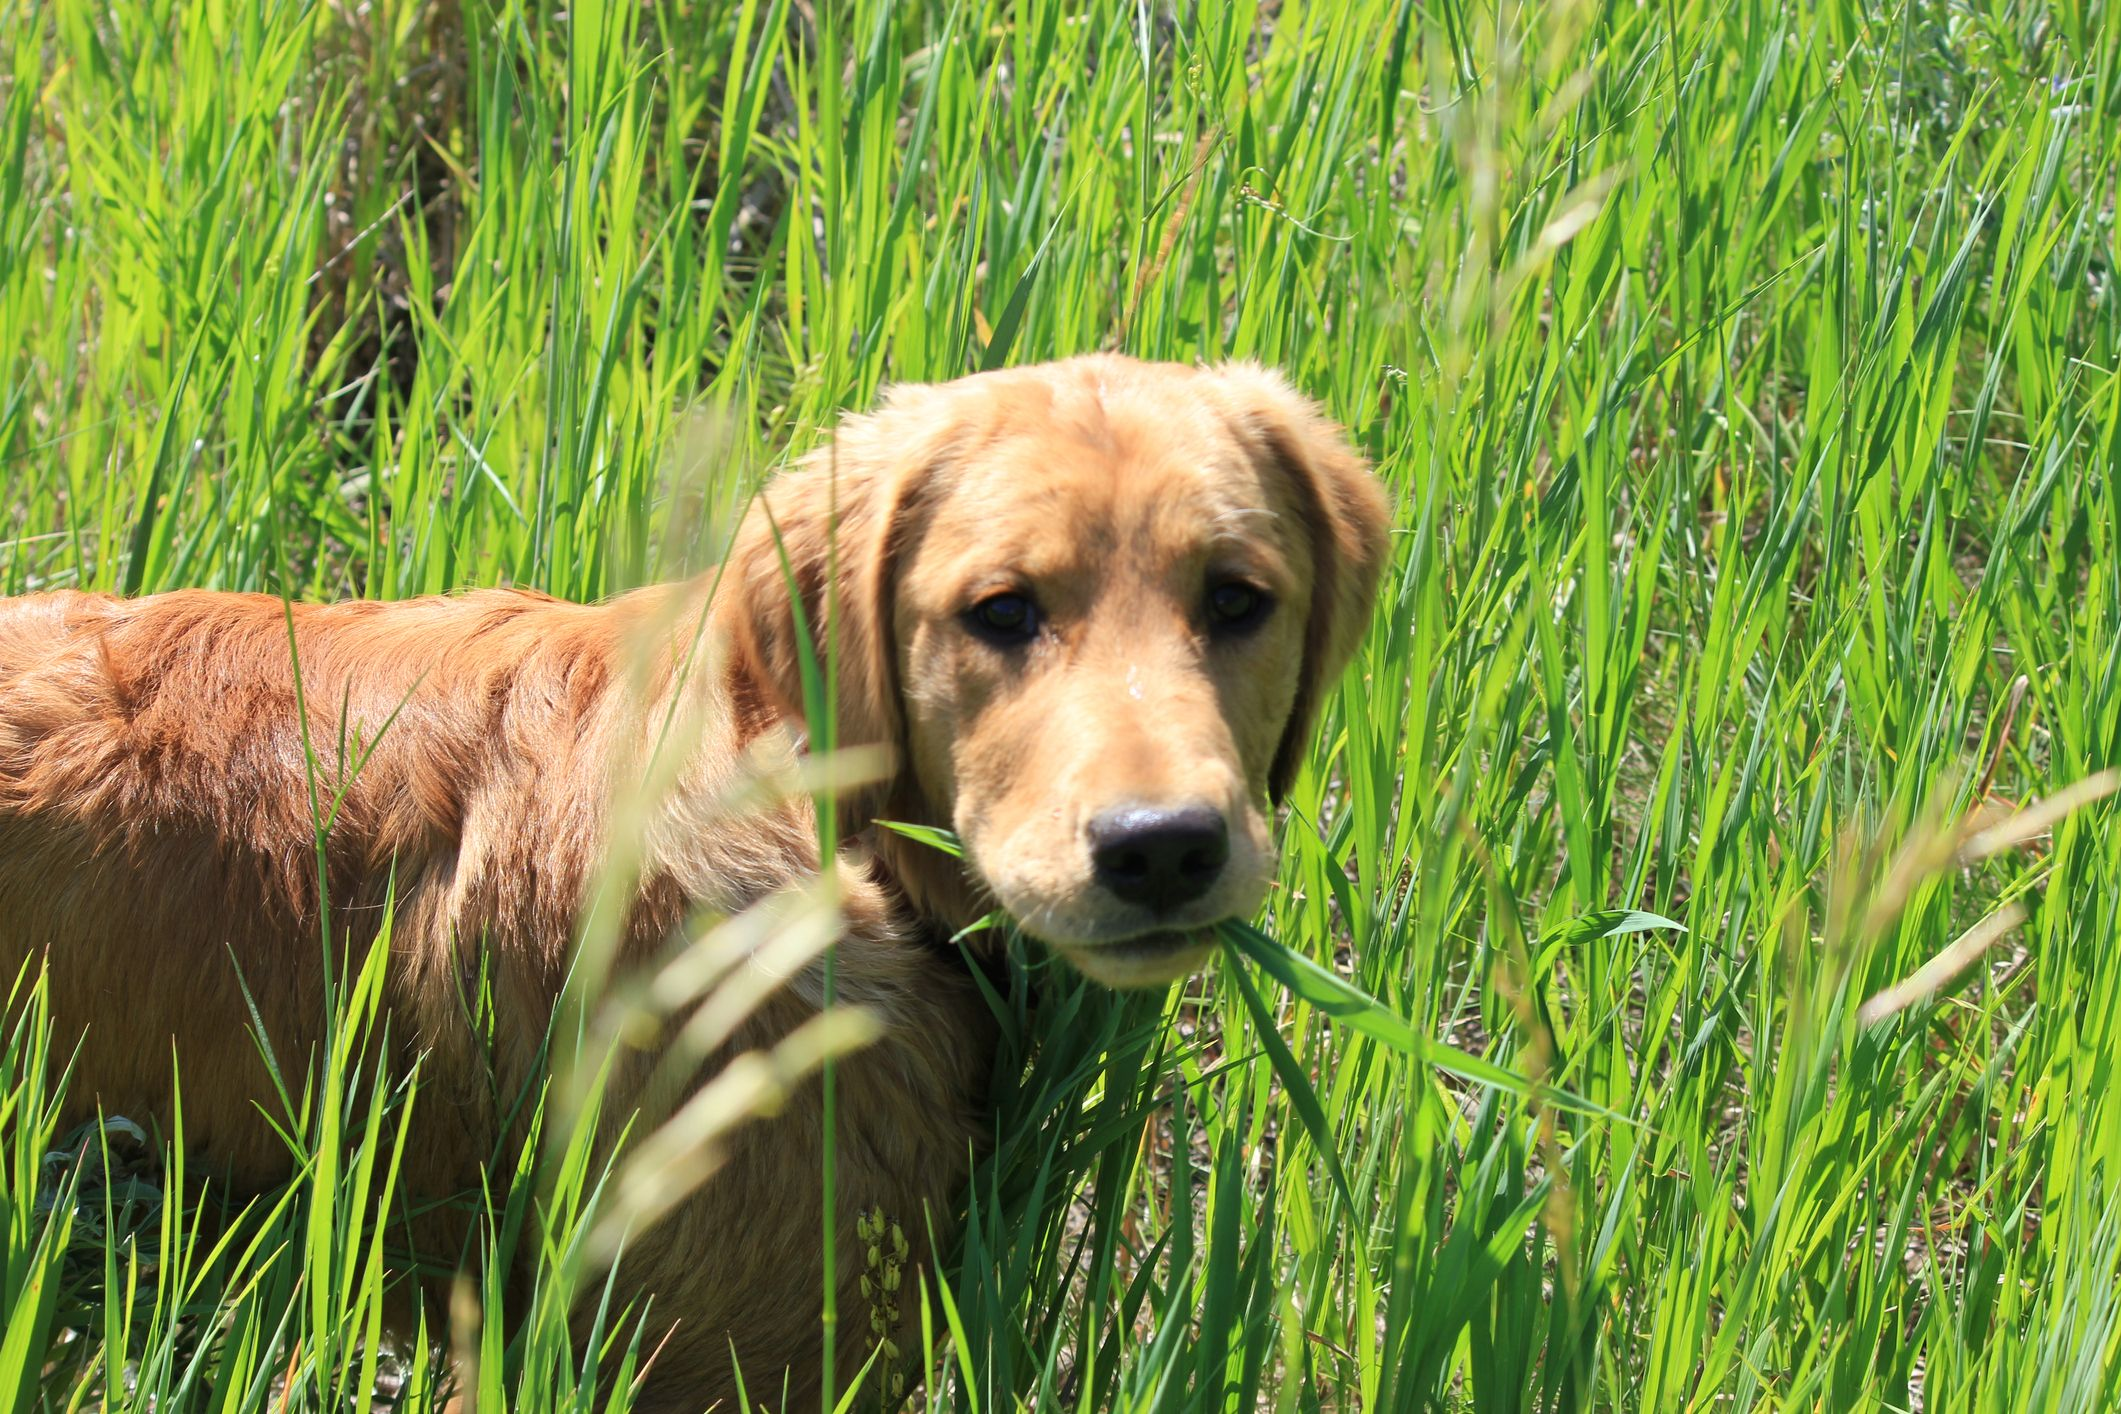 Why Do Dogs Eat Grass Common Reasons And Safety Advice